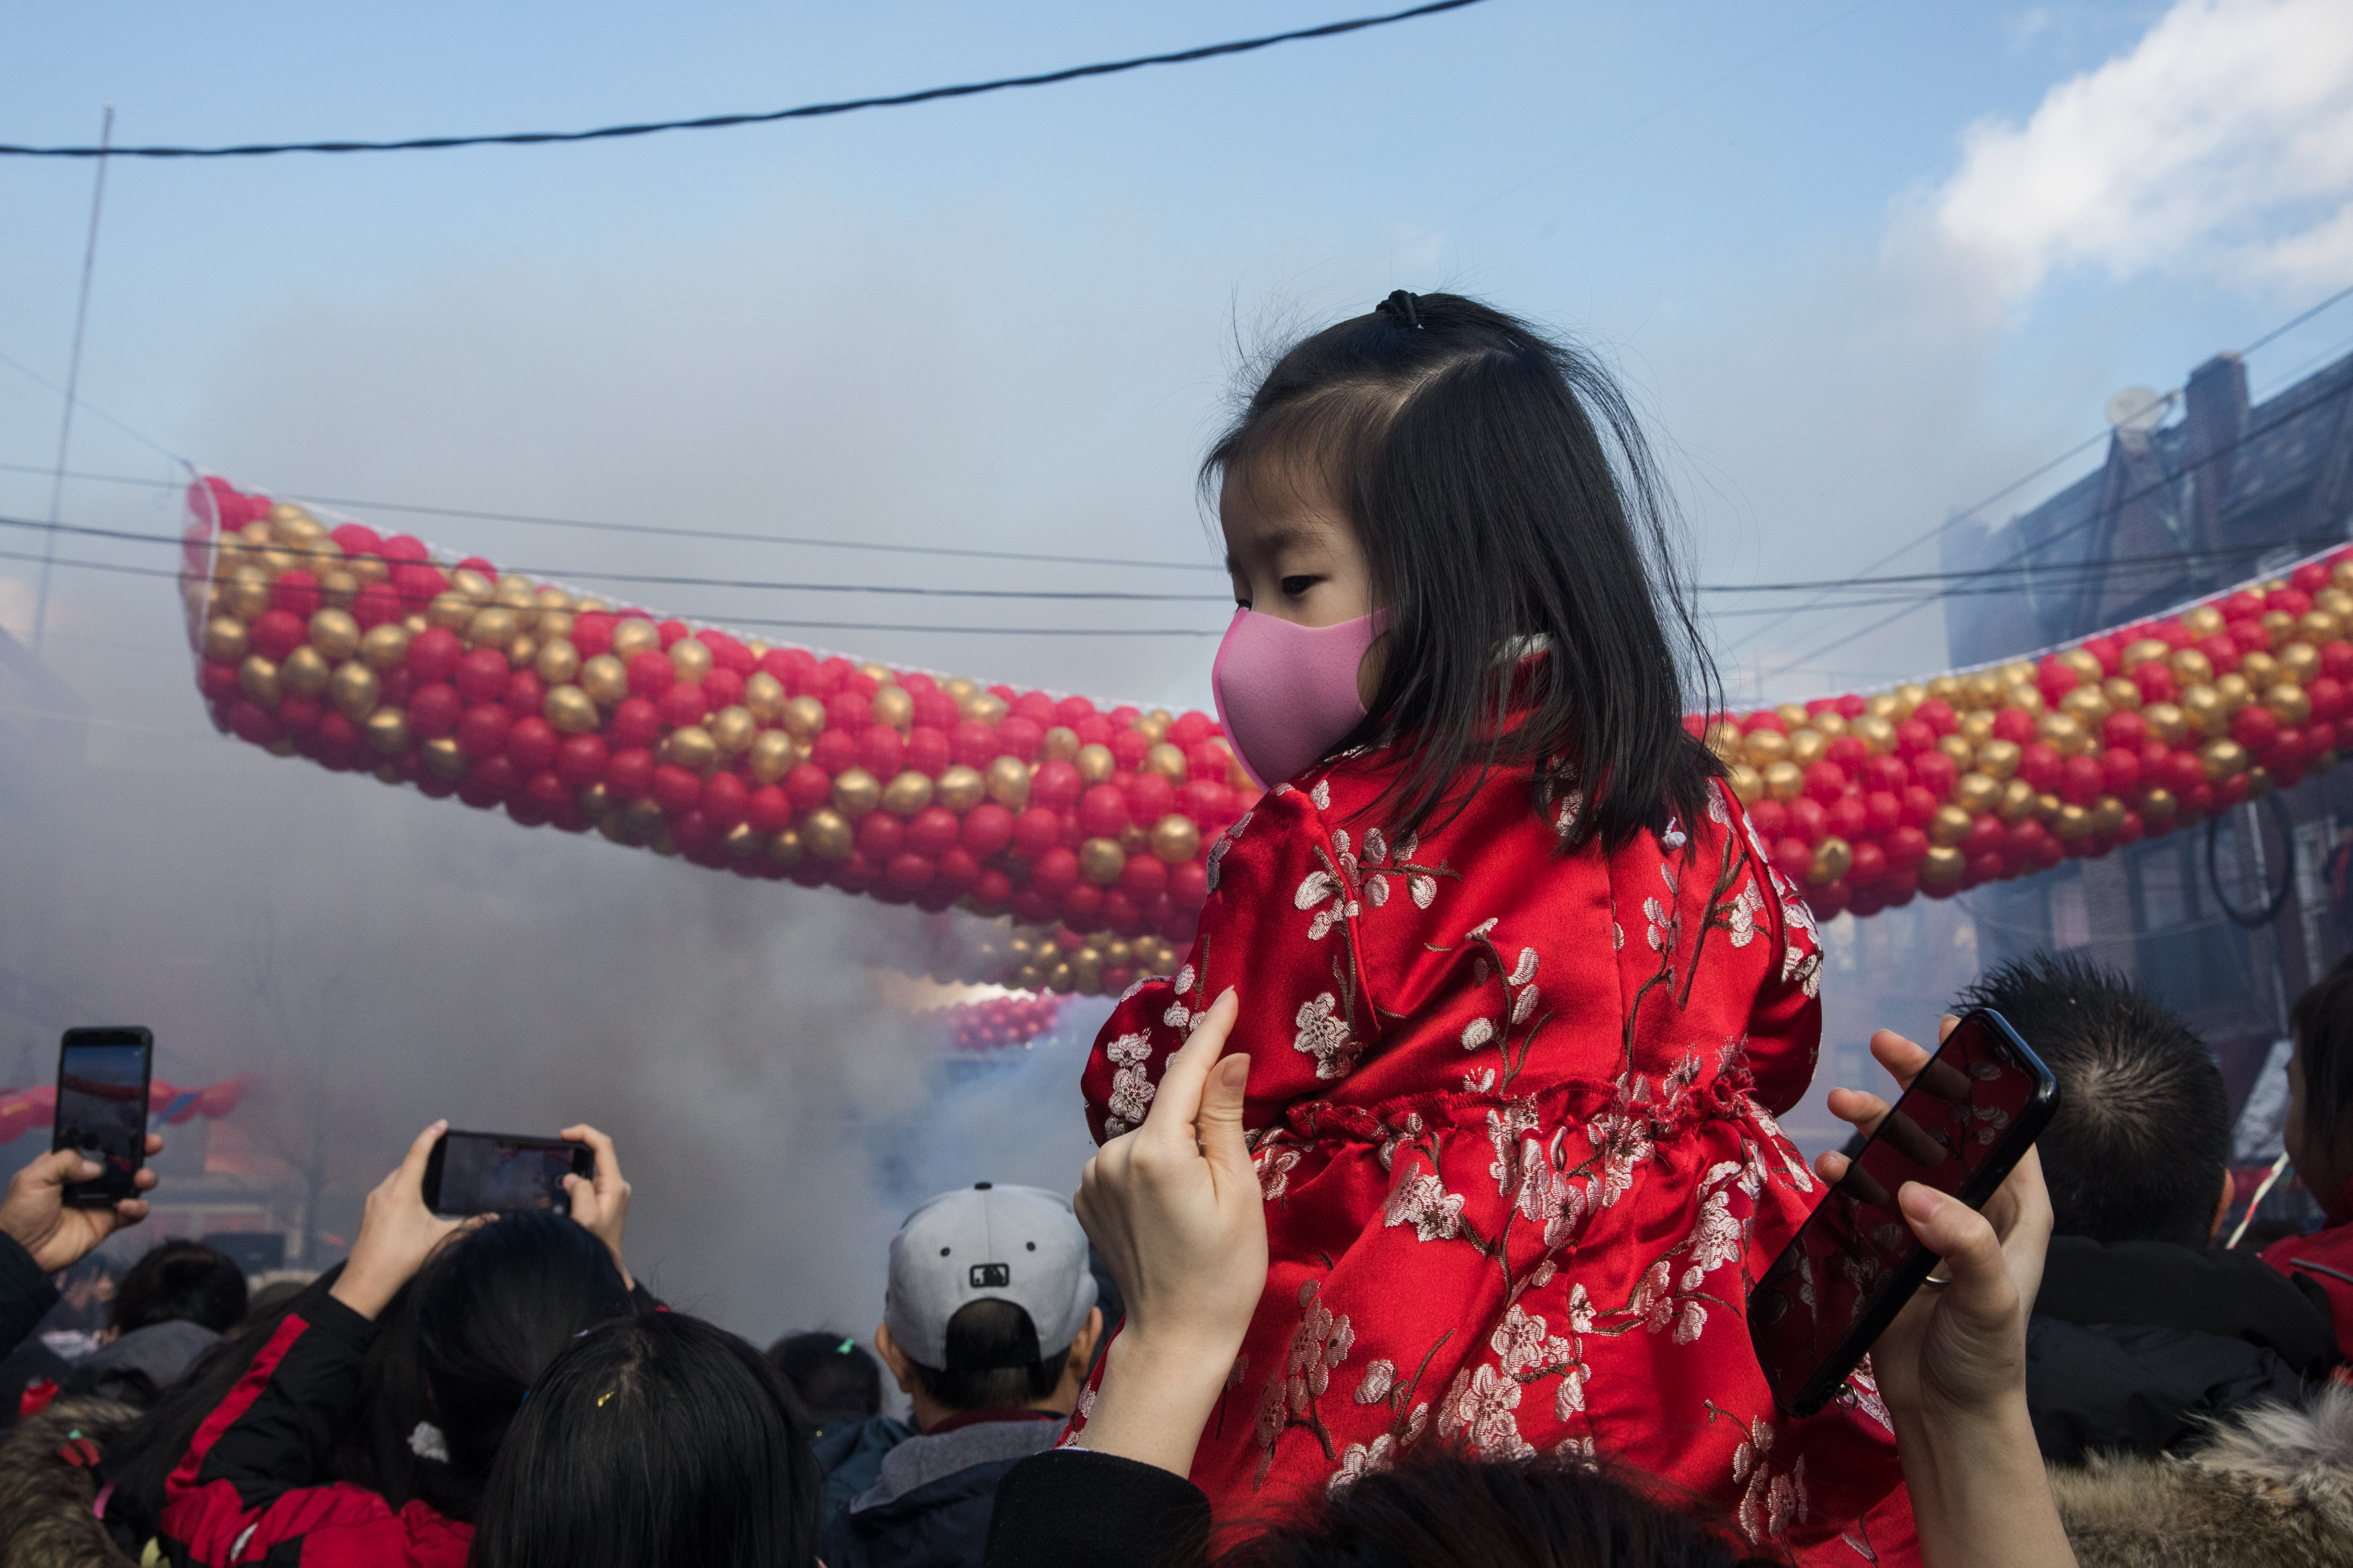 The crowd tightly packed together to watch the firecracker display and balloon drop.